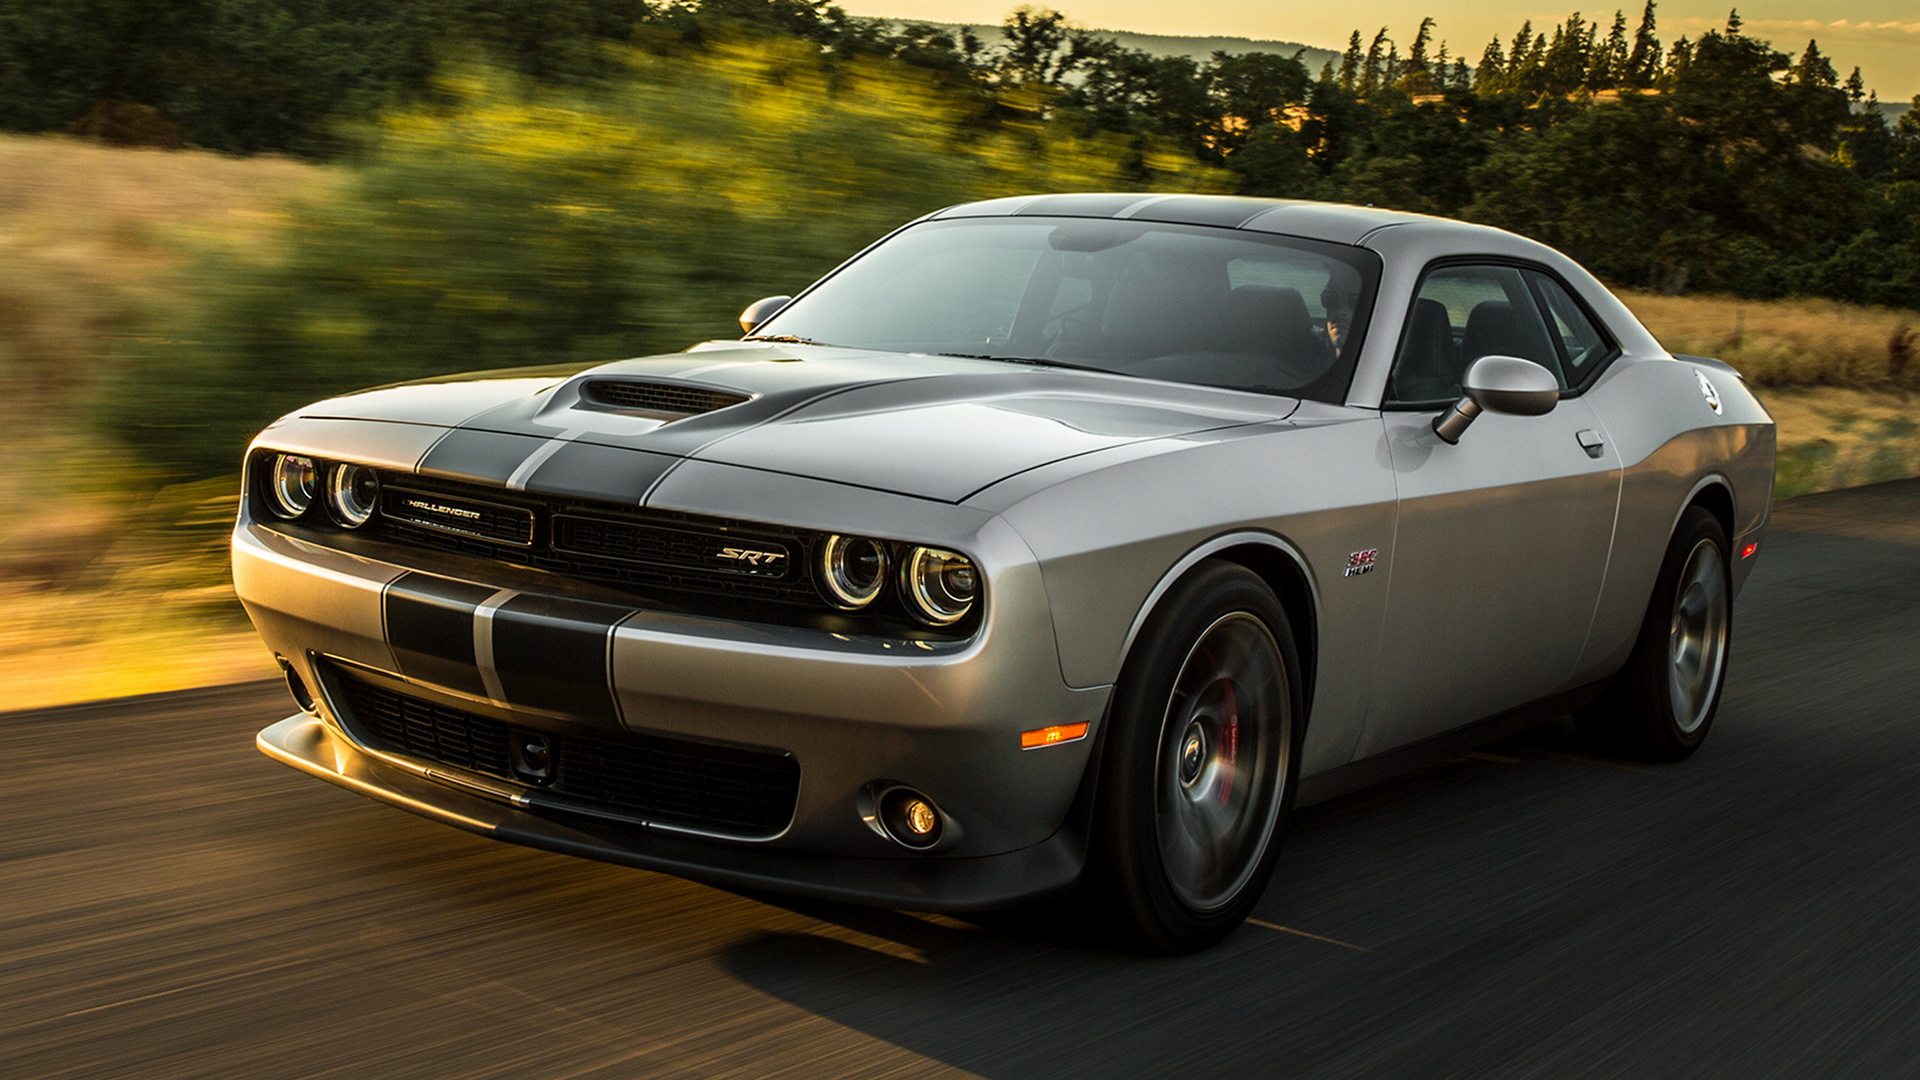 2019 Ram Hd >> Dodge Challenger SRT 392 (2015) Wallpapers and HD Images ...